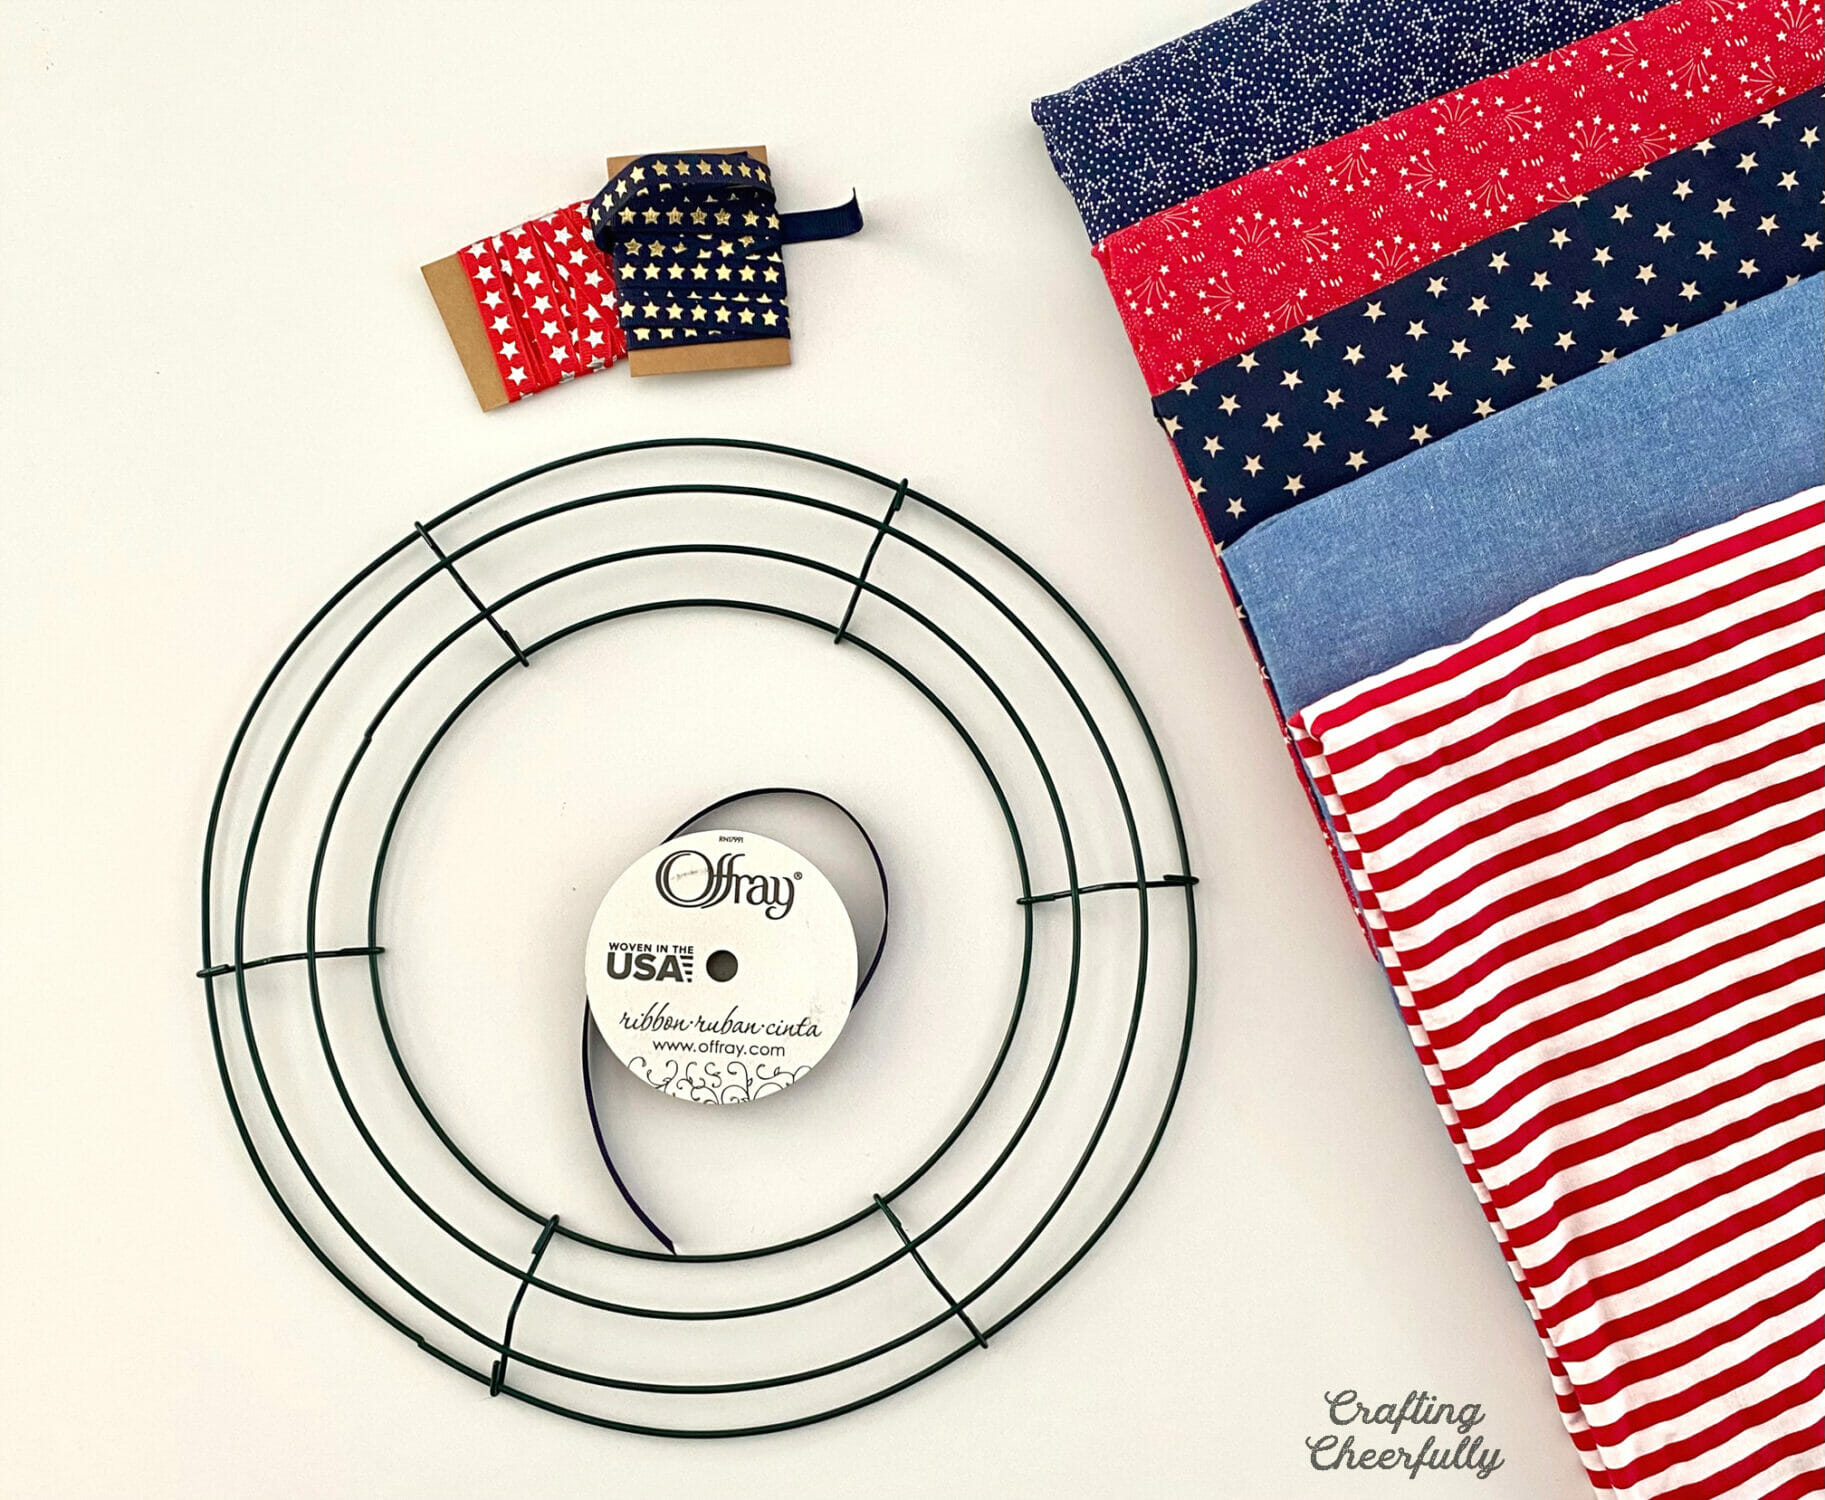 Supplies needed to make a patriotic pillow wreath.